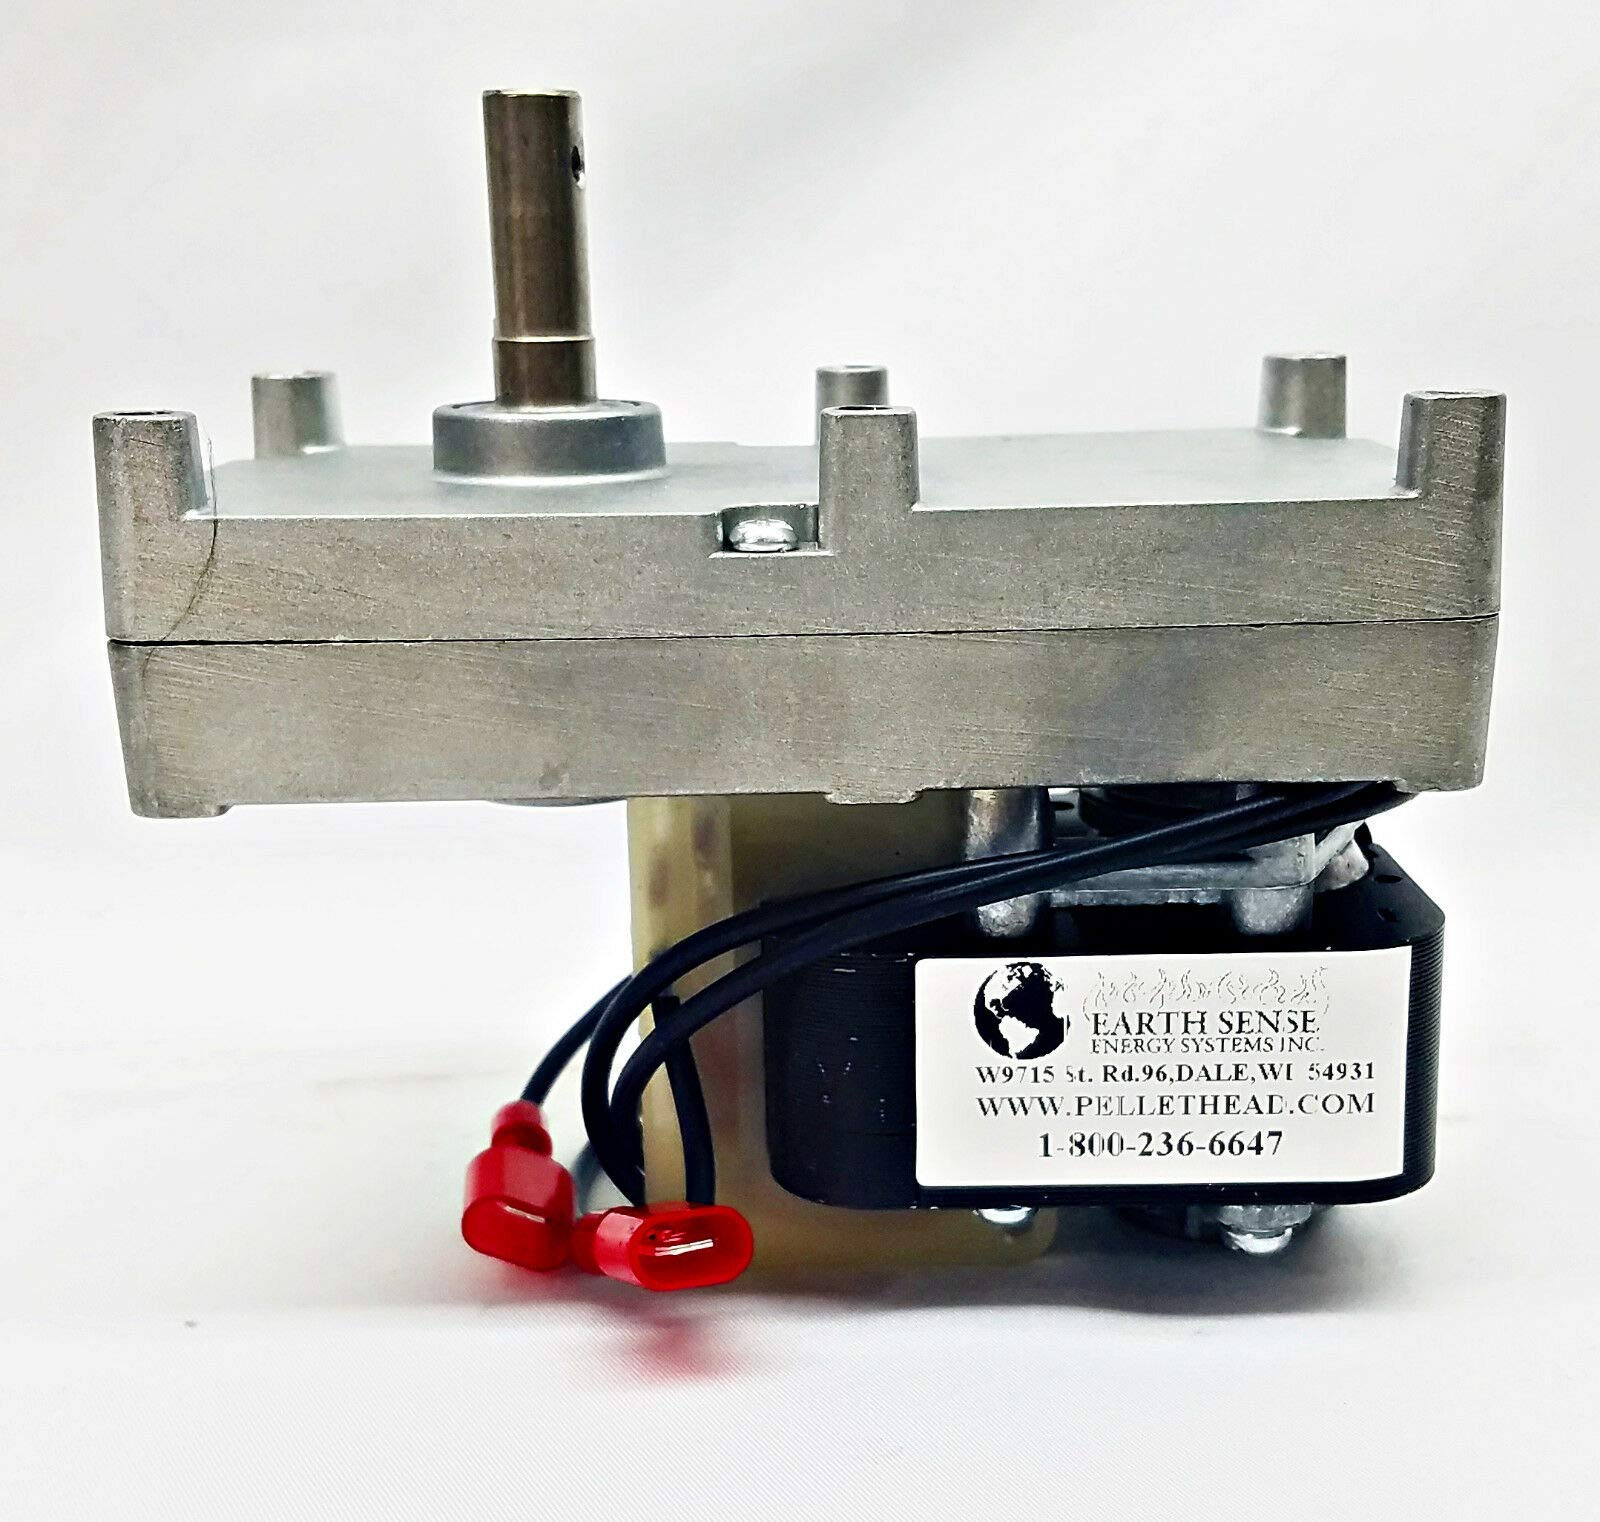 fireplace repl parts (New Part) US Stove 5660 Ashley Bay Auger Motor, 1 RPM CLOCKWISE with Hole 80606 | PH-CW1H / firs for Many Models, Check in Description + (one Free Author's Book) by fireplace repl parts